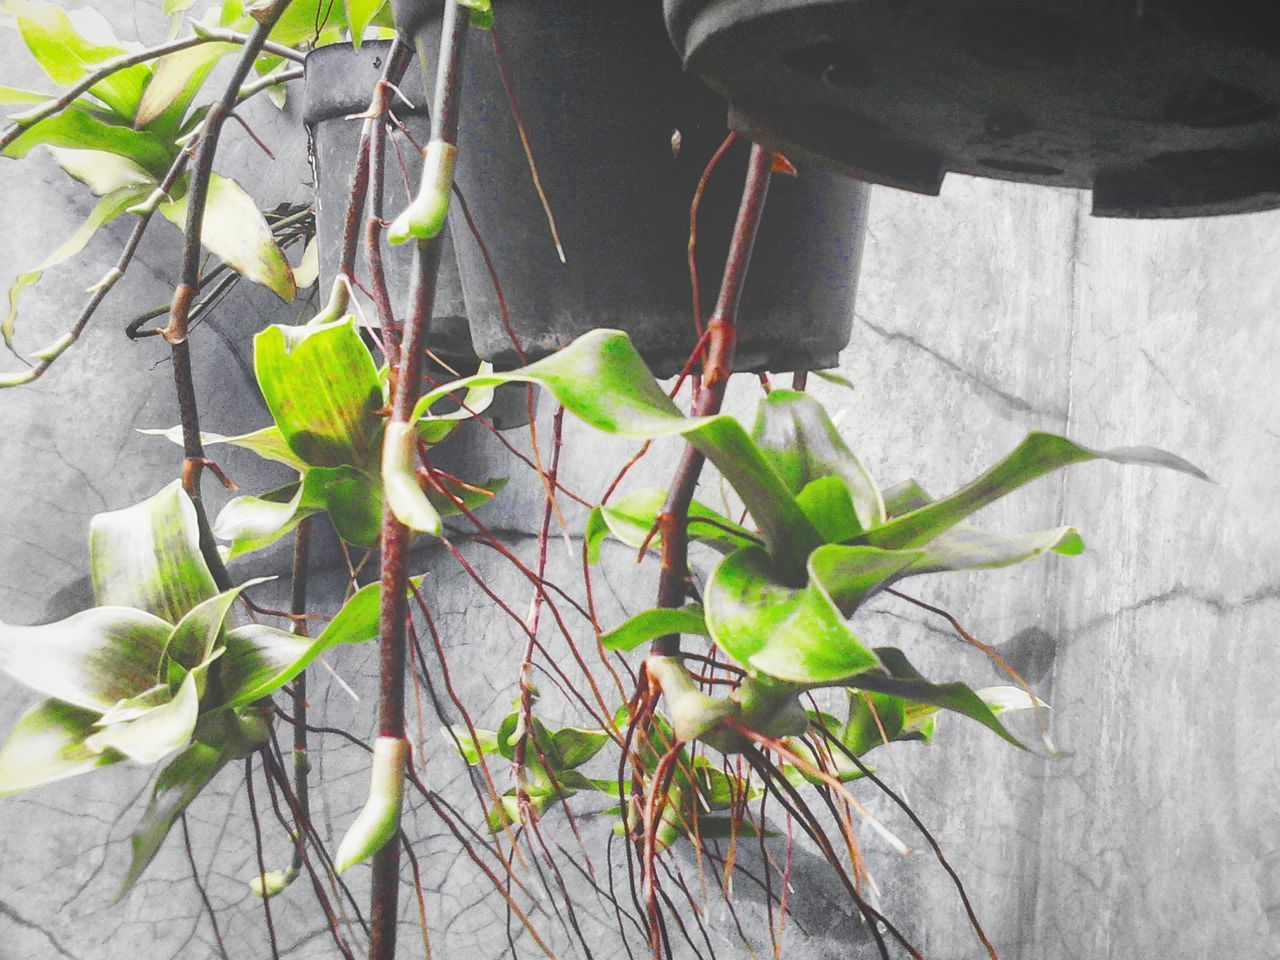 Leaf Plant Growth Nature No People Green Color Outdoors Close-up Beauty In Nature Day Freshness